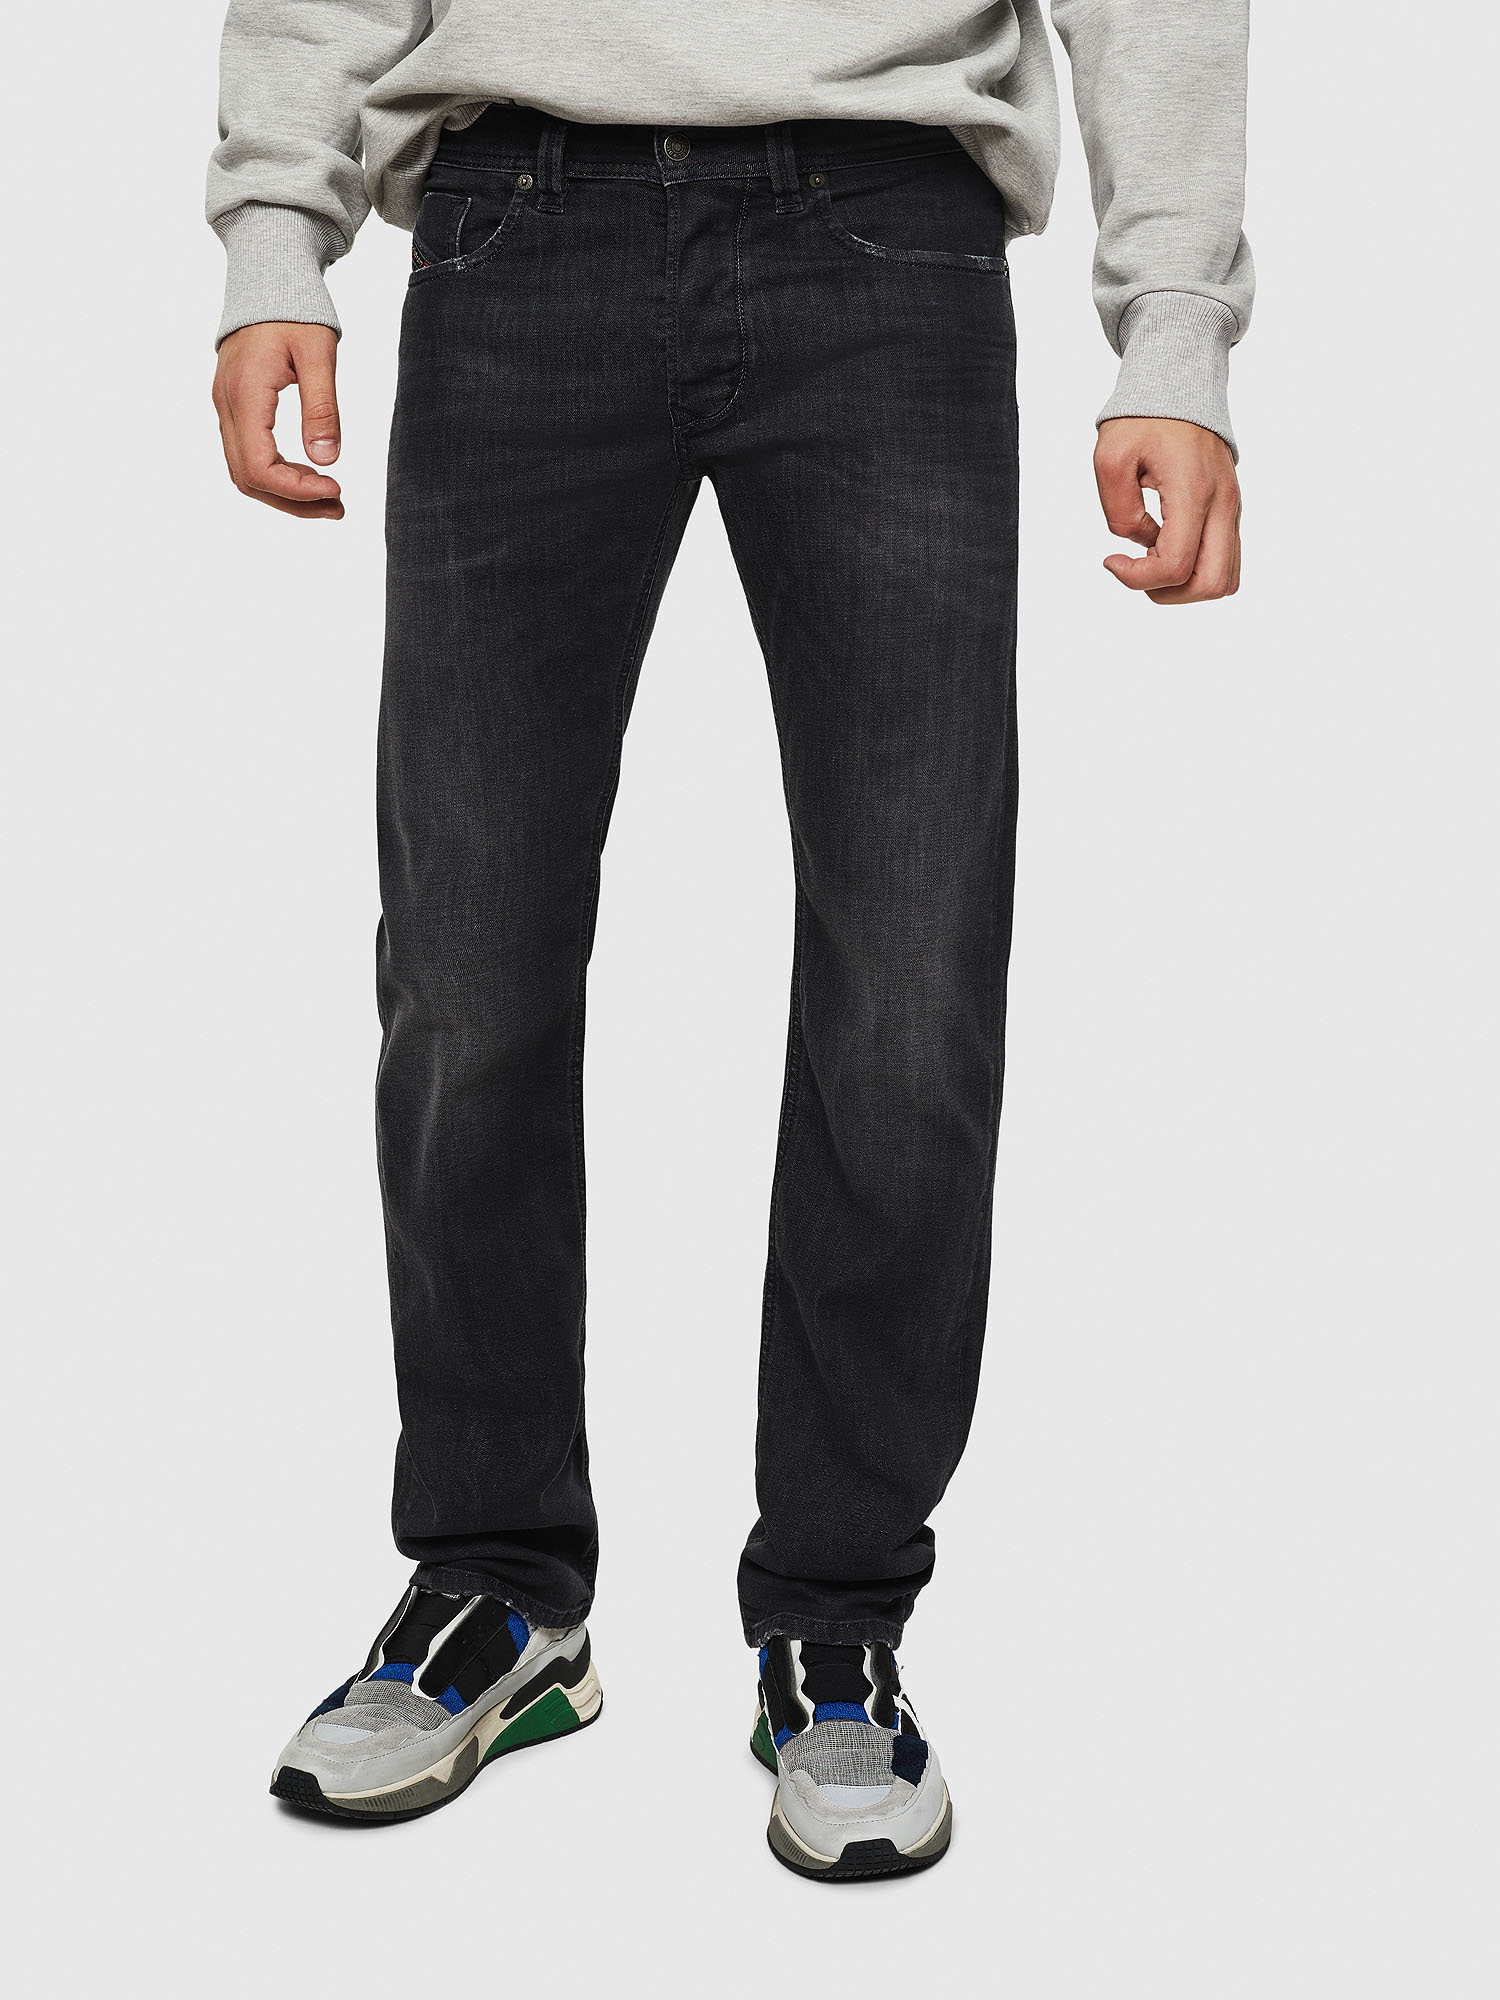 Diesel - Larkee 082AS,  - Jeans - Image 1